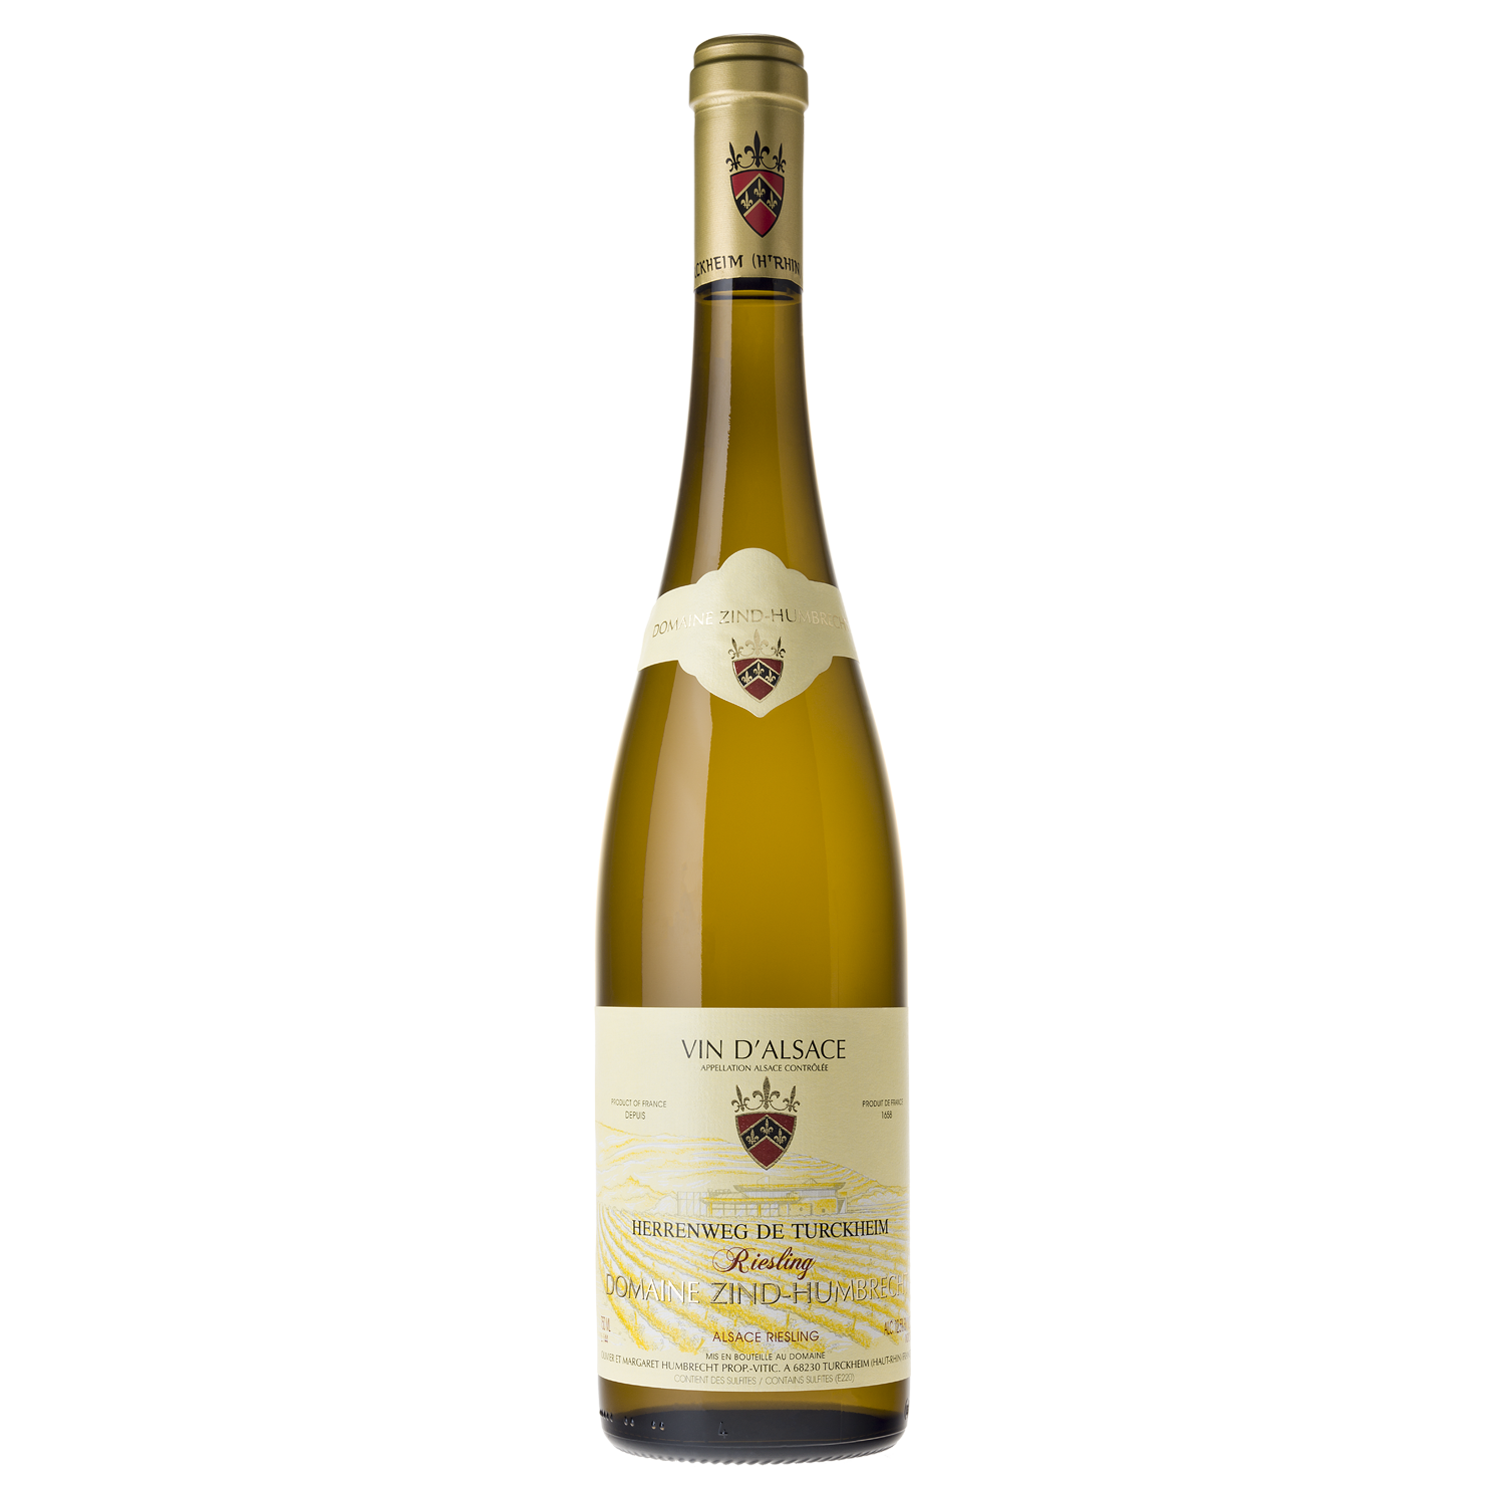 Henner Riesling Domaine Zind-Humbrecht